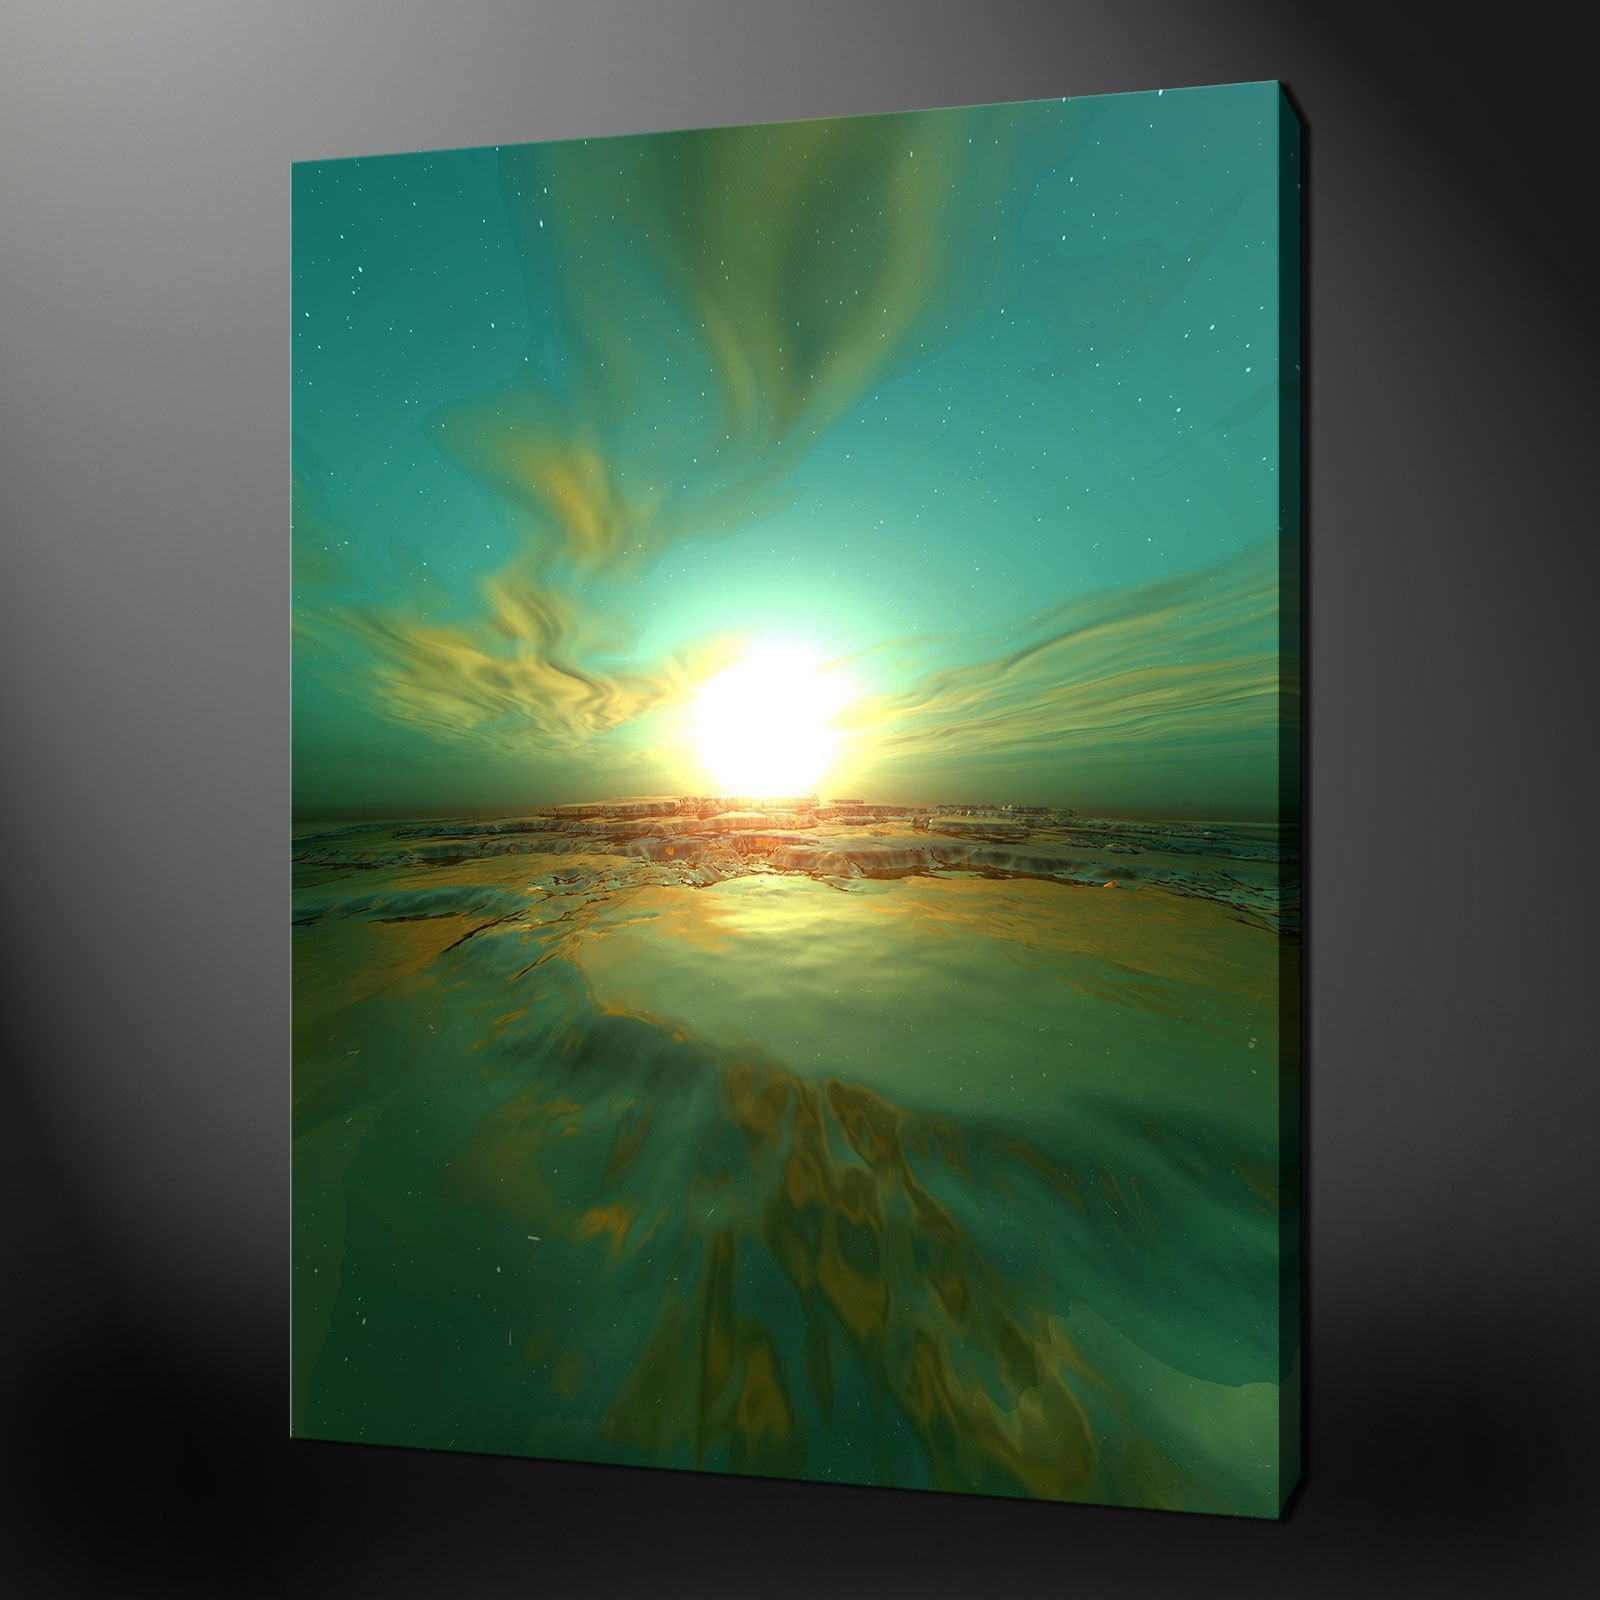 ABSTRACT GREEN MOON SUNSET MODERN DESIGN CANVAS PRINT 20 x 16 Inch